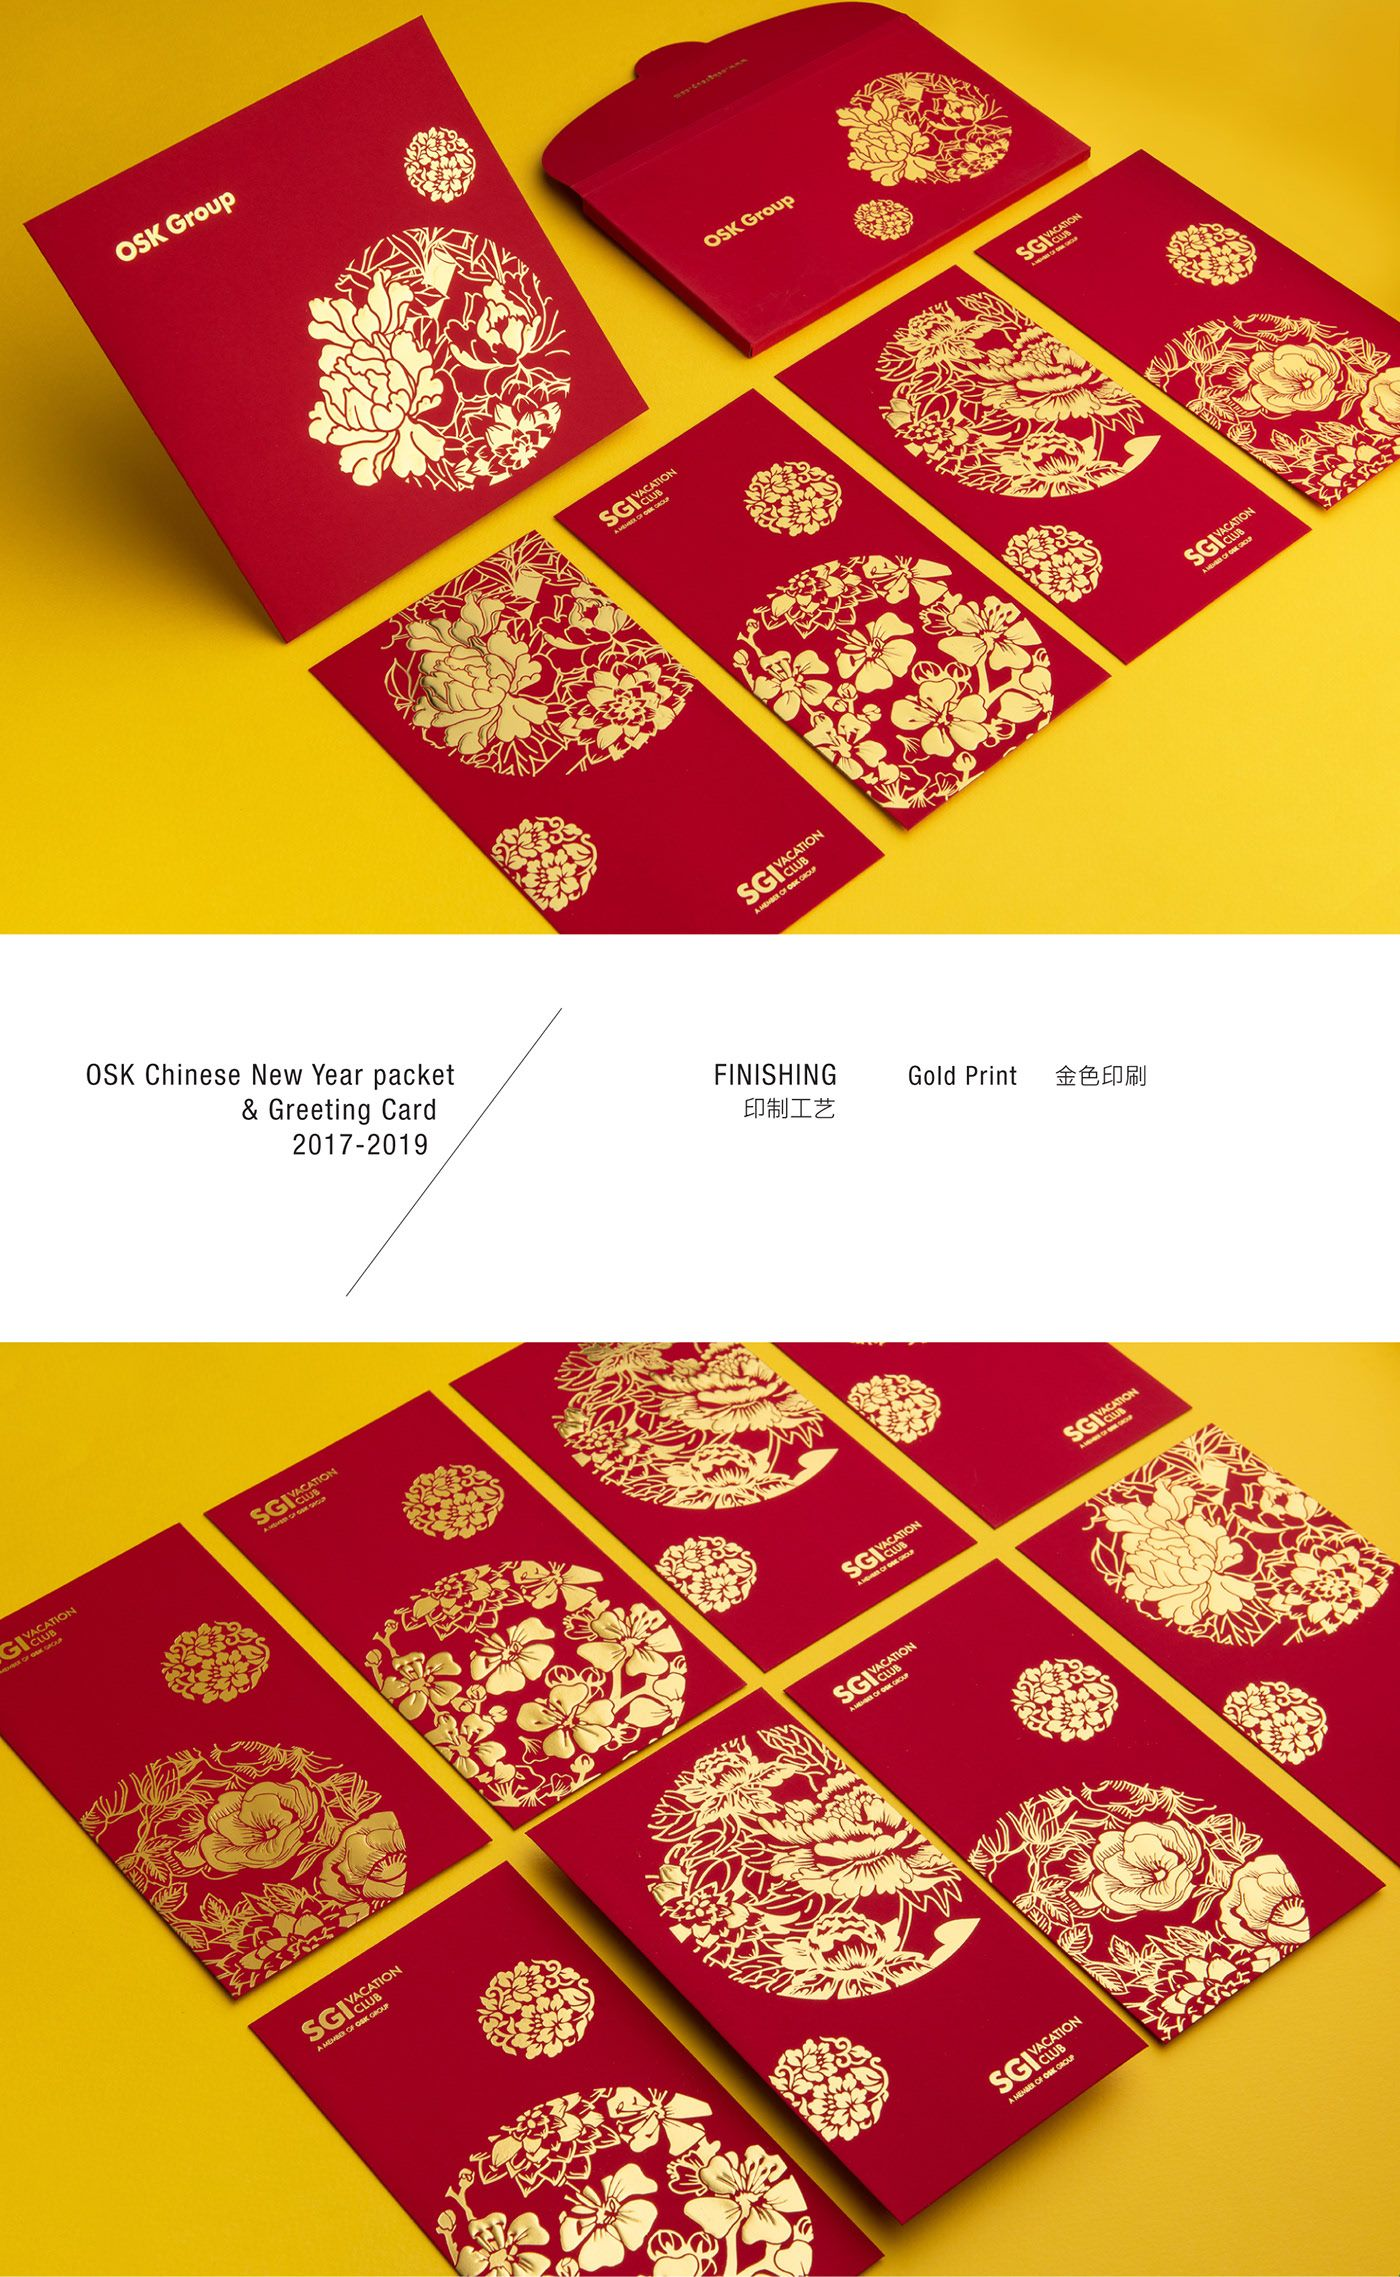 OSK Chinese New Year Packet & Greeting Card 2016&2018 on